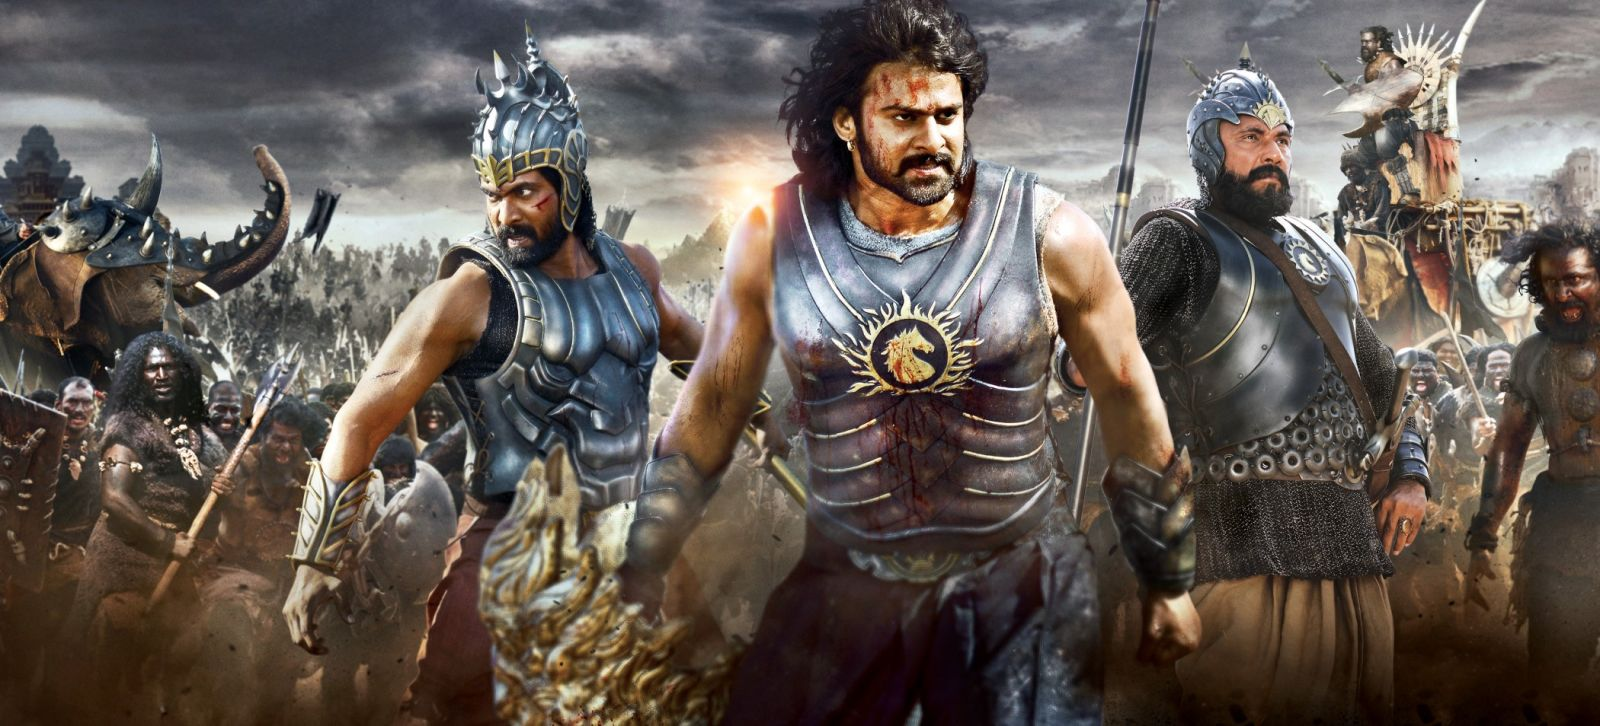 Mega Budget Bahubali Movie 30th 31st 32nd Day 5th Weekend Box Office Collection